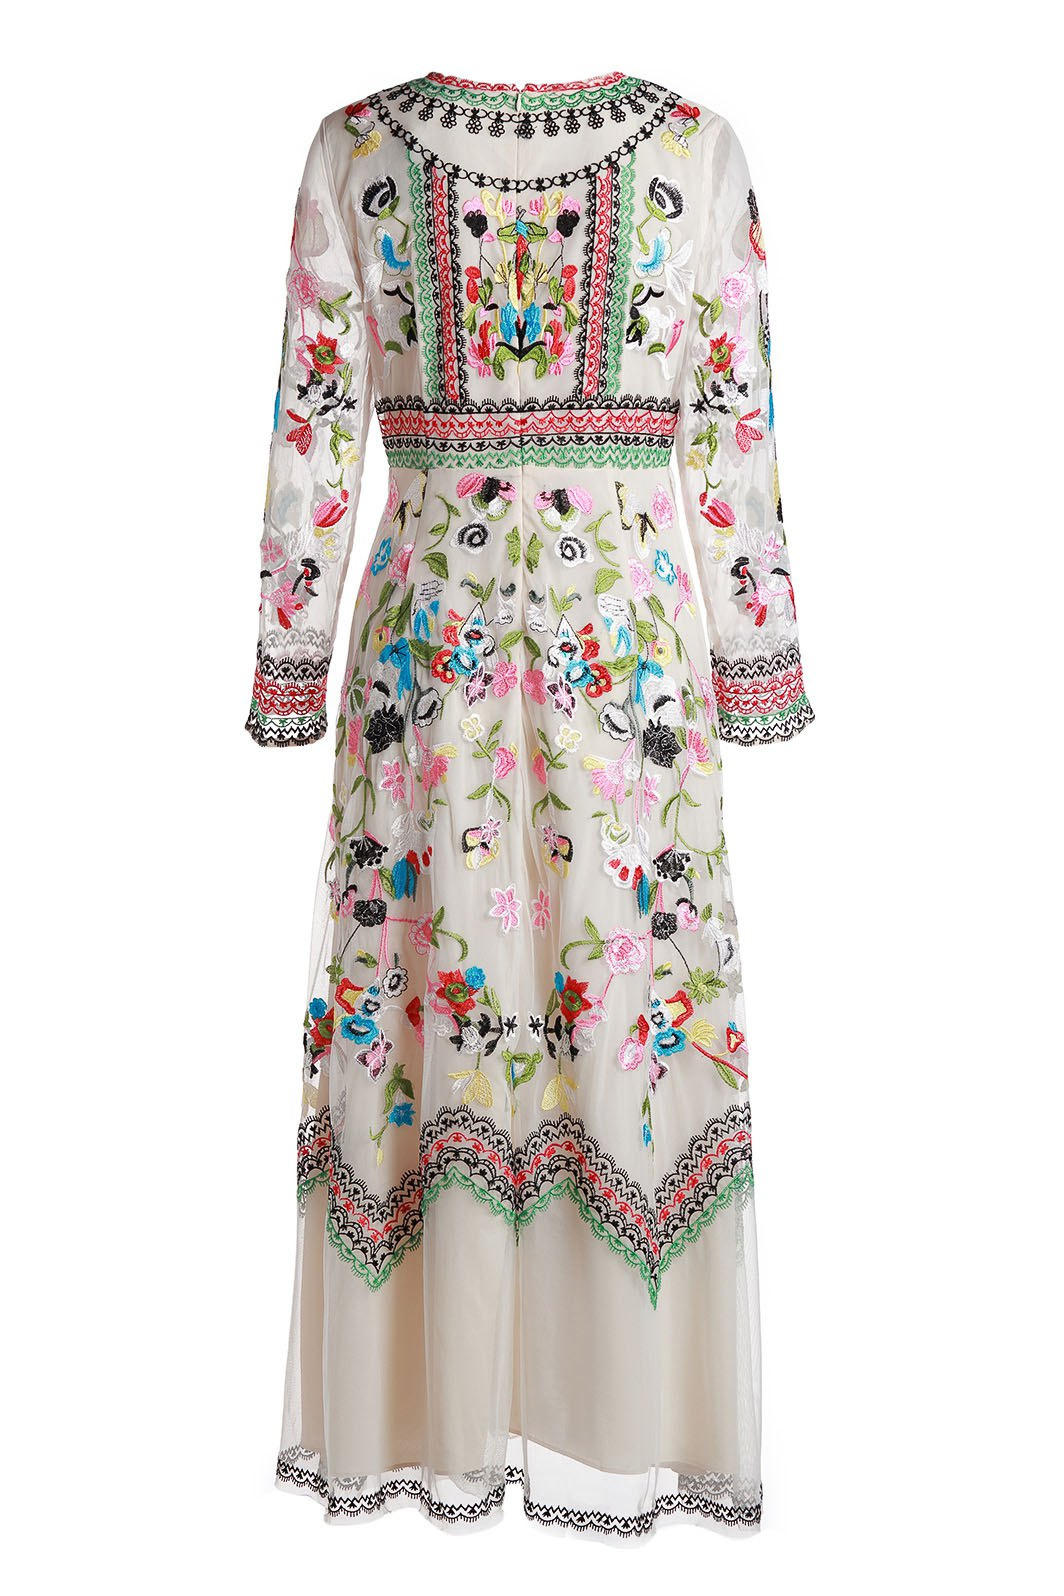 Affordable Gorgeous Round Neck Long Sleeve Floral Embrodery Women's Evening Dress